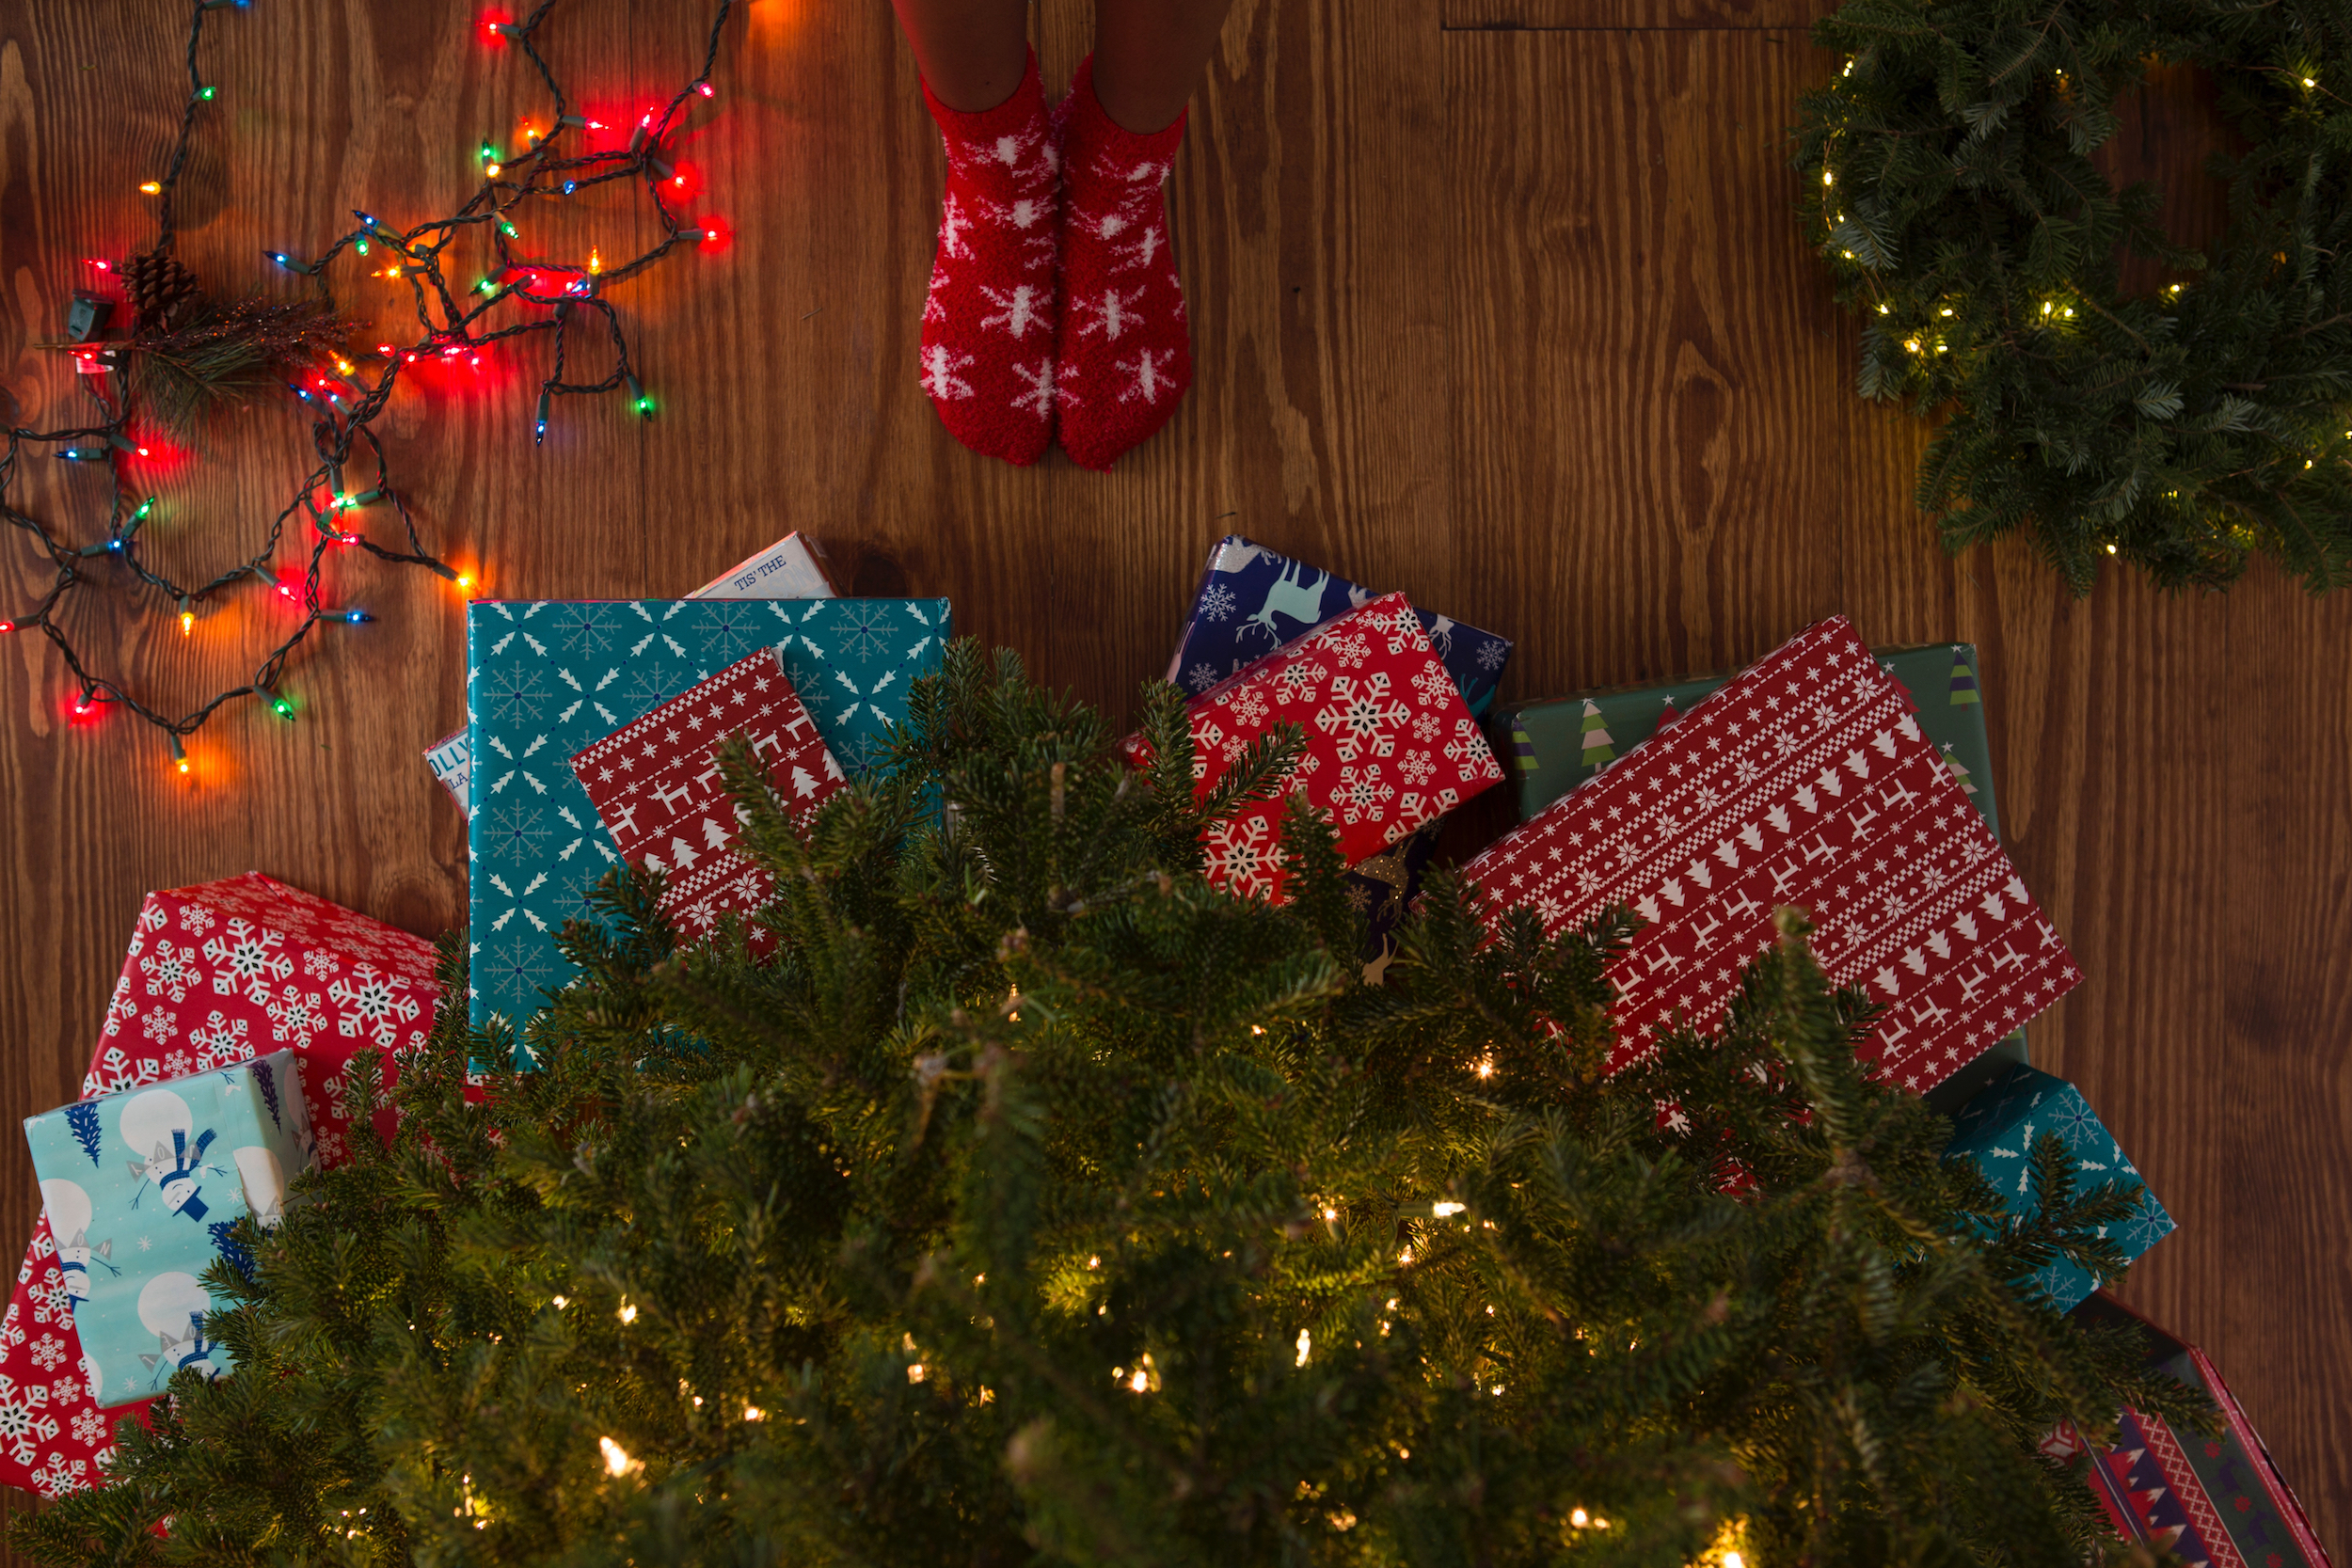 11 Customer Holiday Gift Ideas That Don't Suck